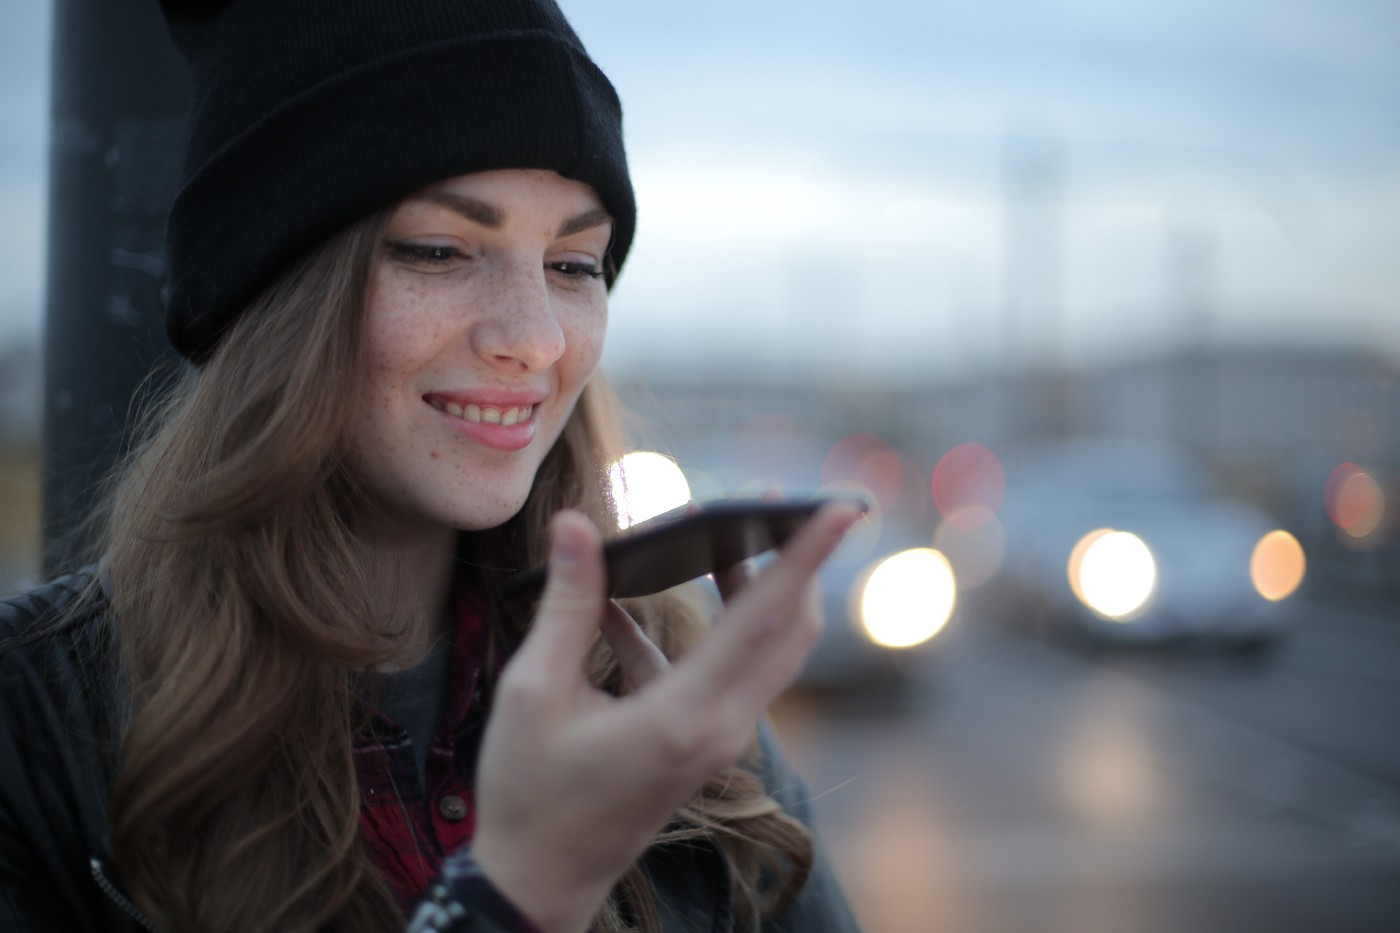 Girl with black hat on holding phone up and smiling with busy street of cars in the background